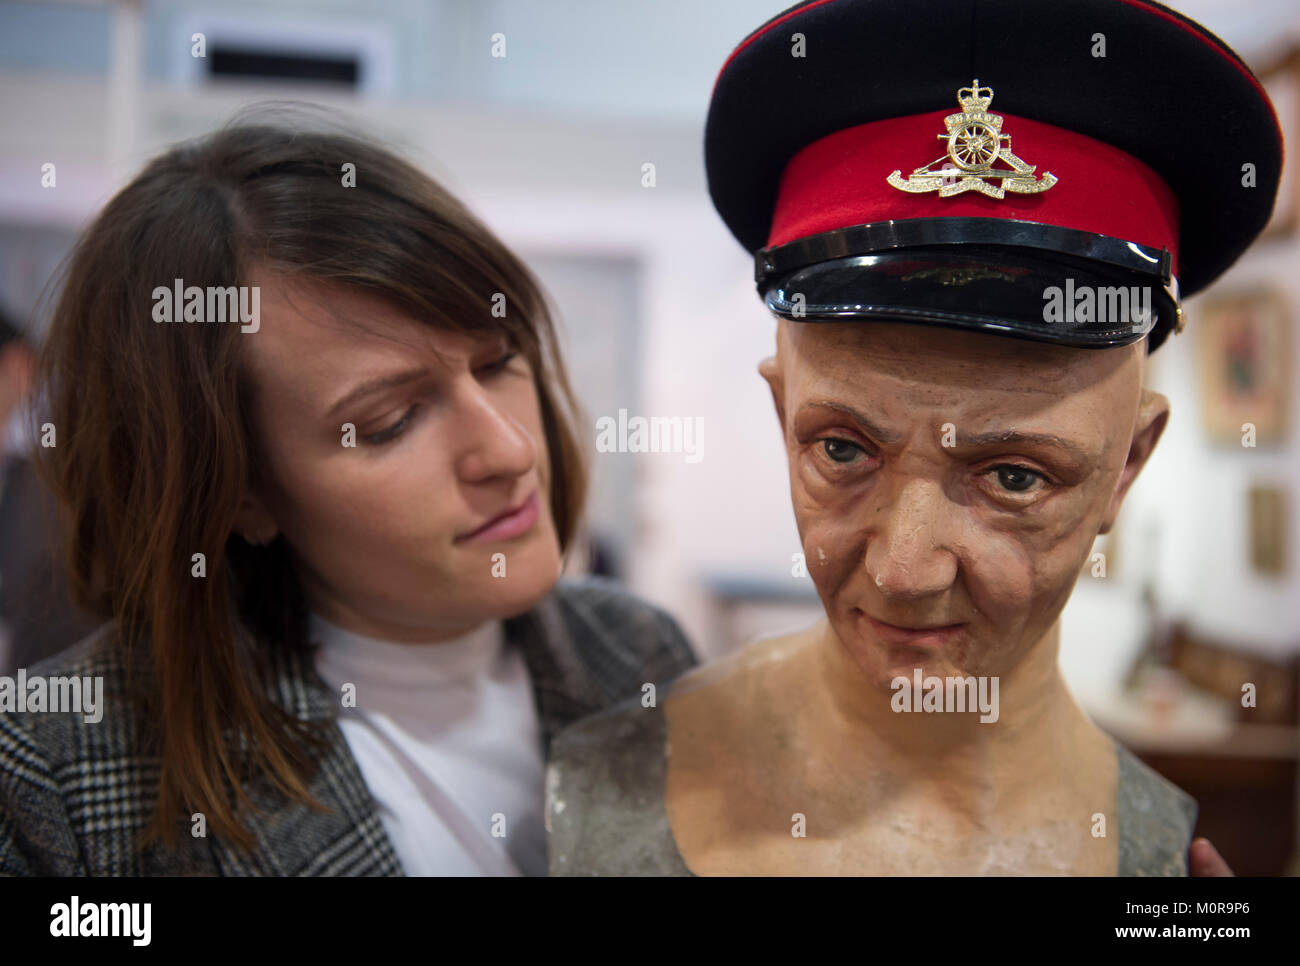 Military Antiques Stock Photos & Military Antiques Stock Images - Alamy